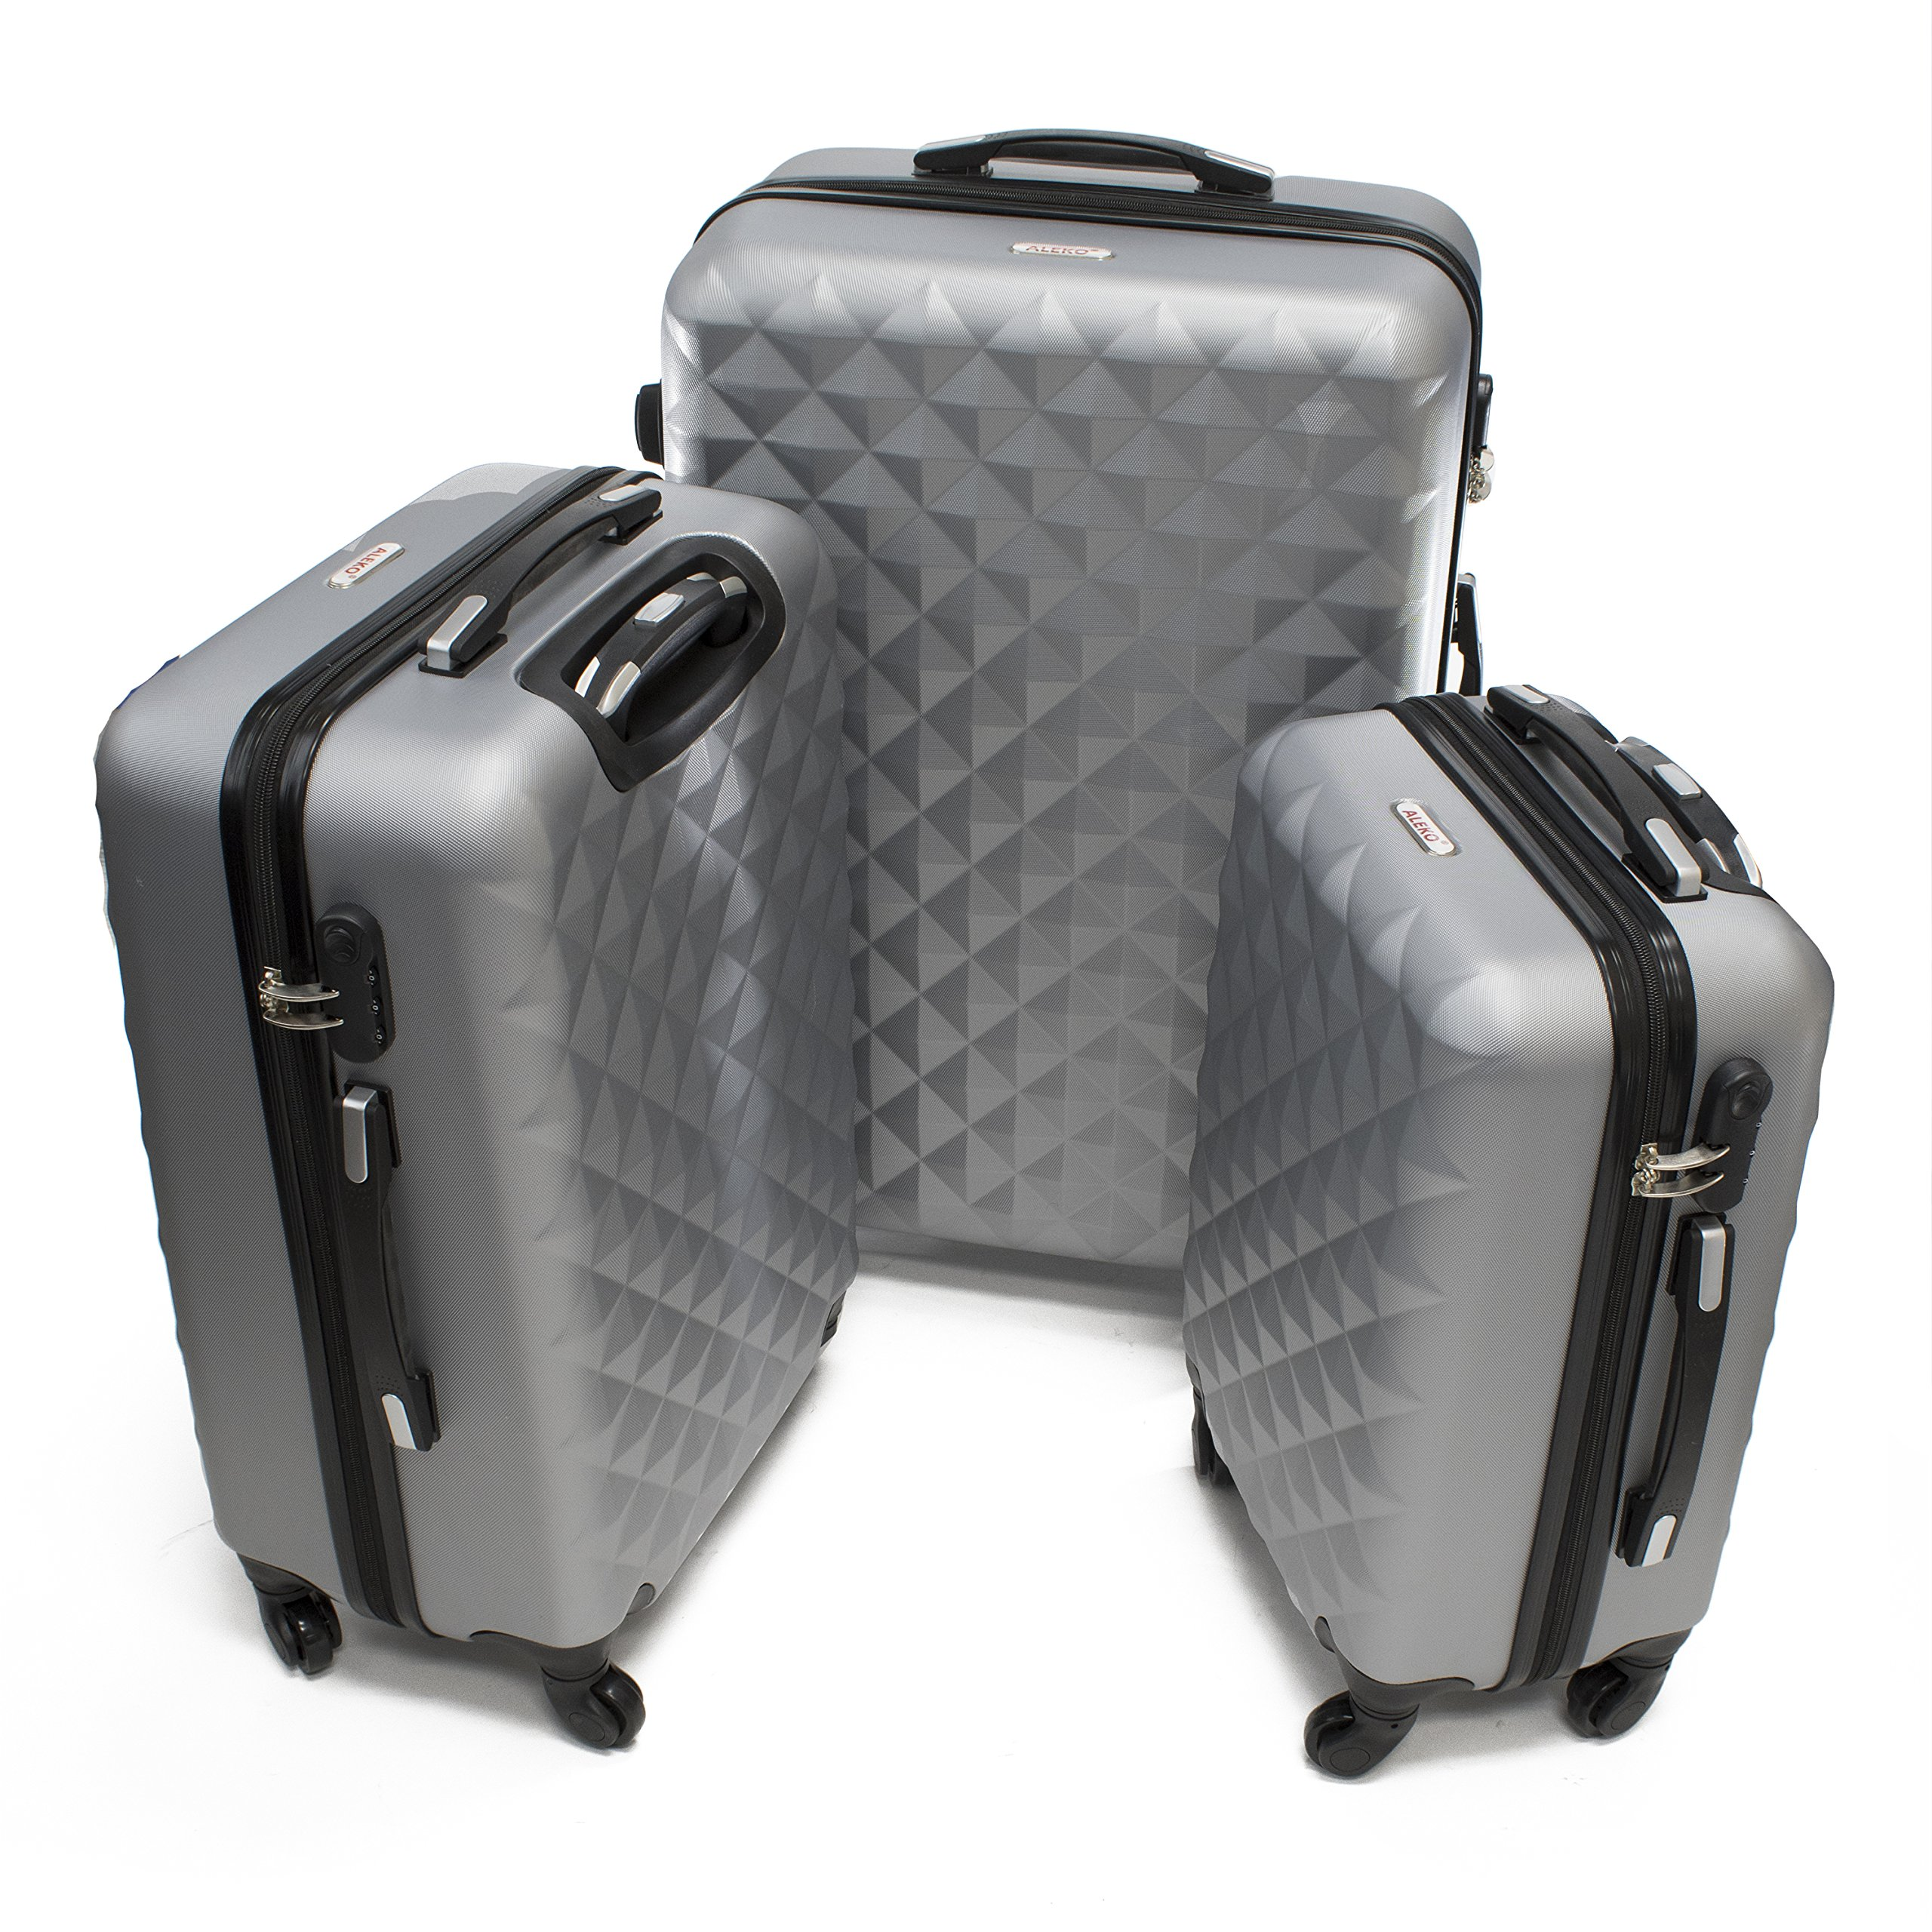 a30451322394 Details about ALEKO LG52SL ABS Suitcase Set Luggage Travel with Lock, 3  Piece, Diamond